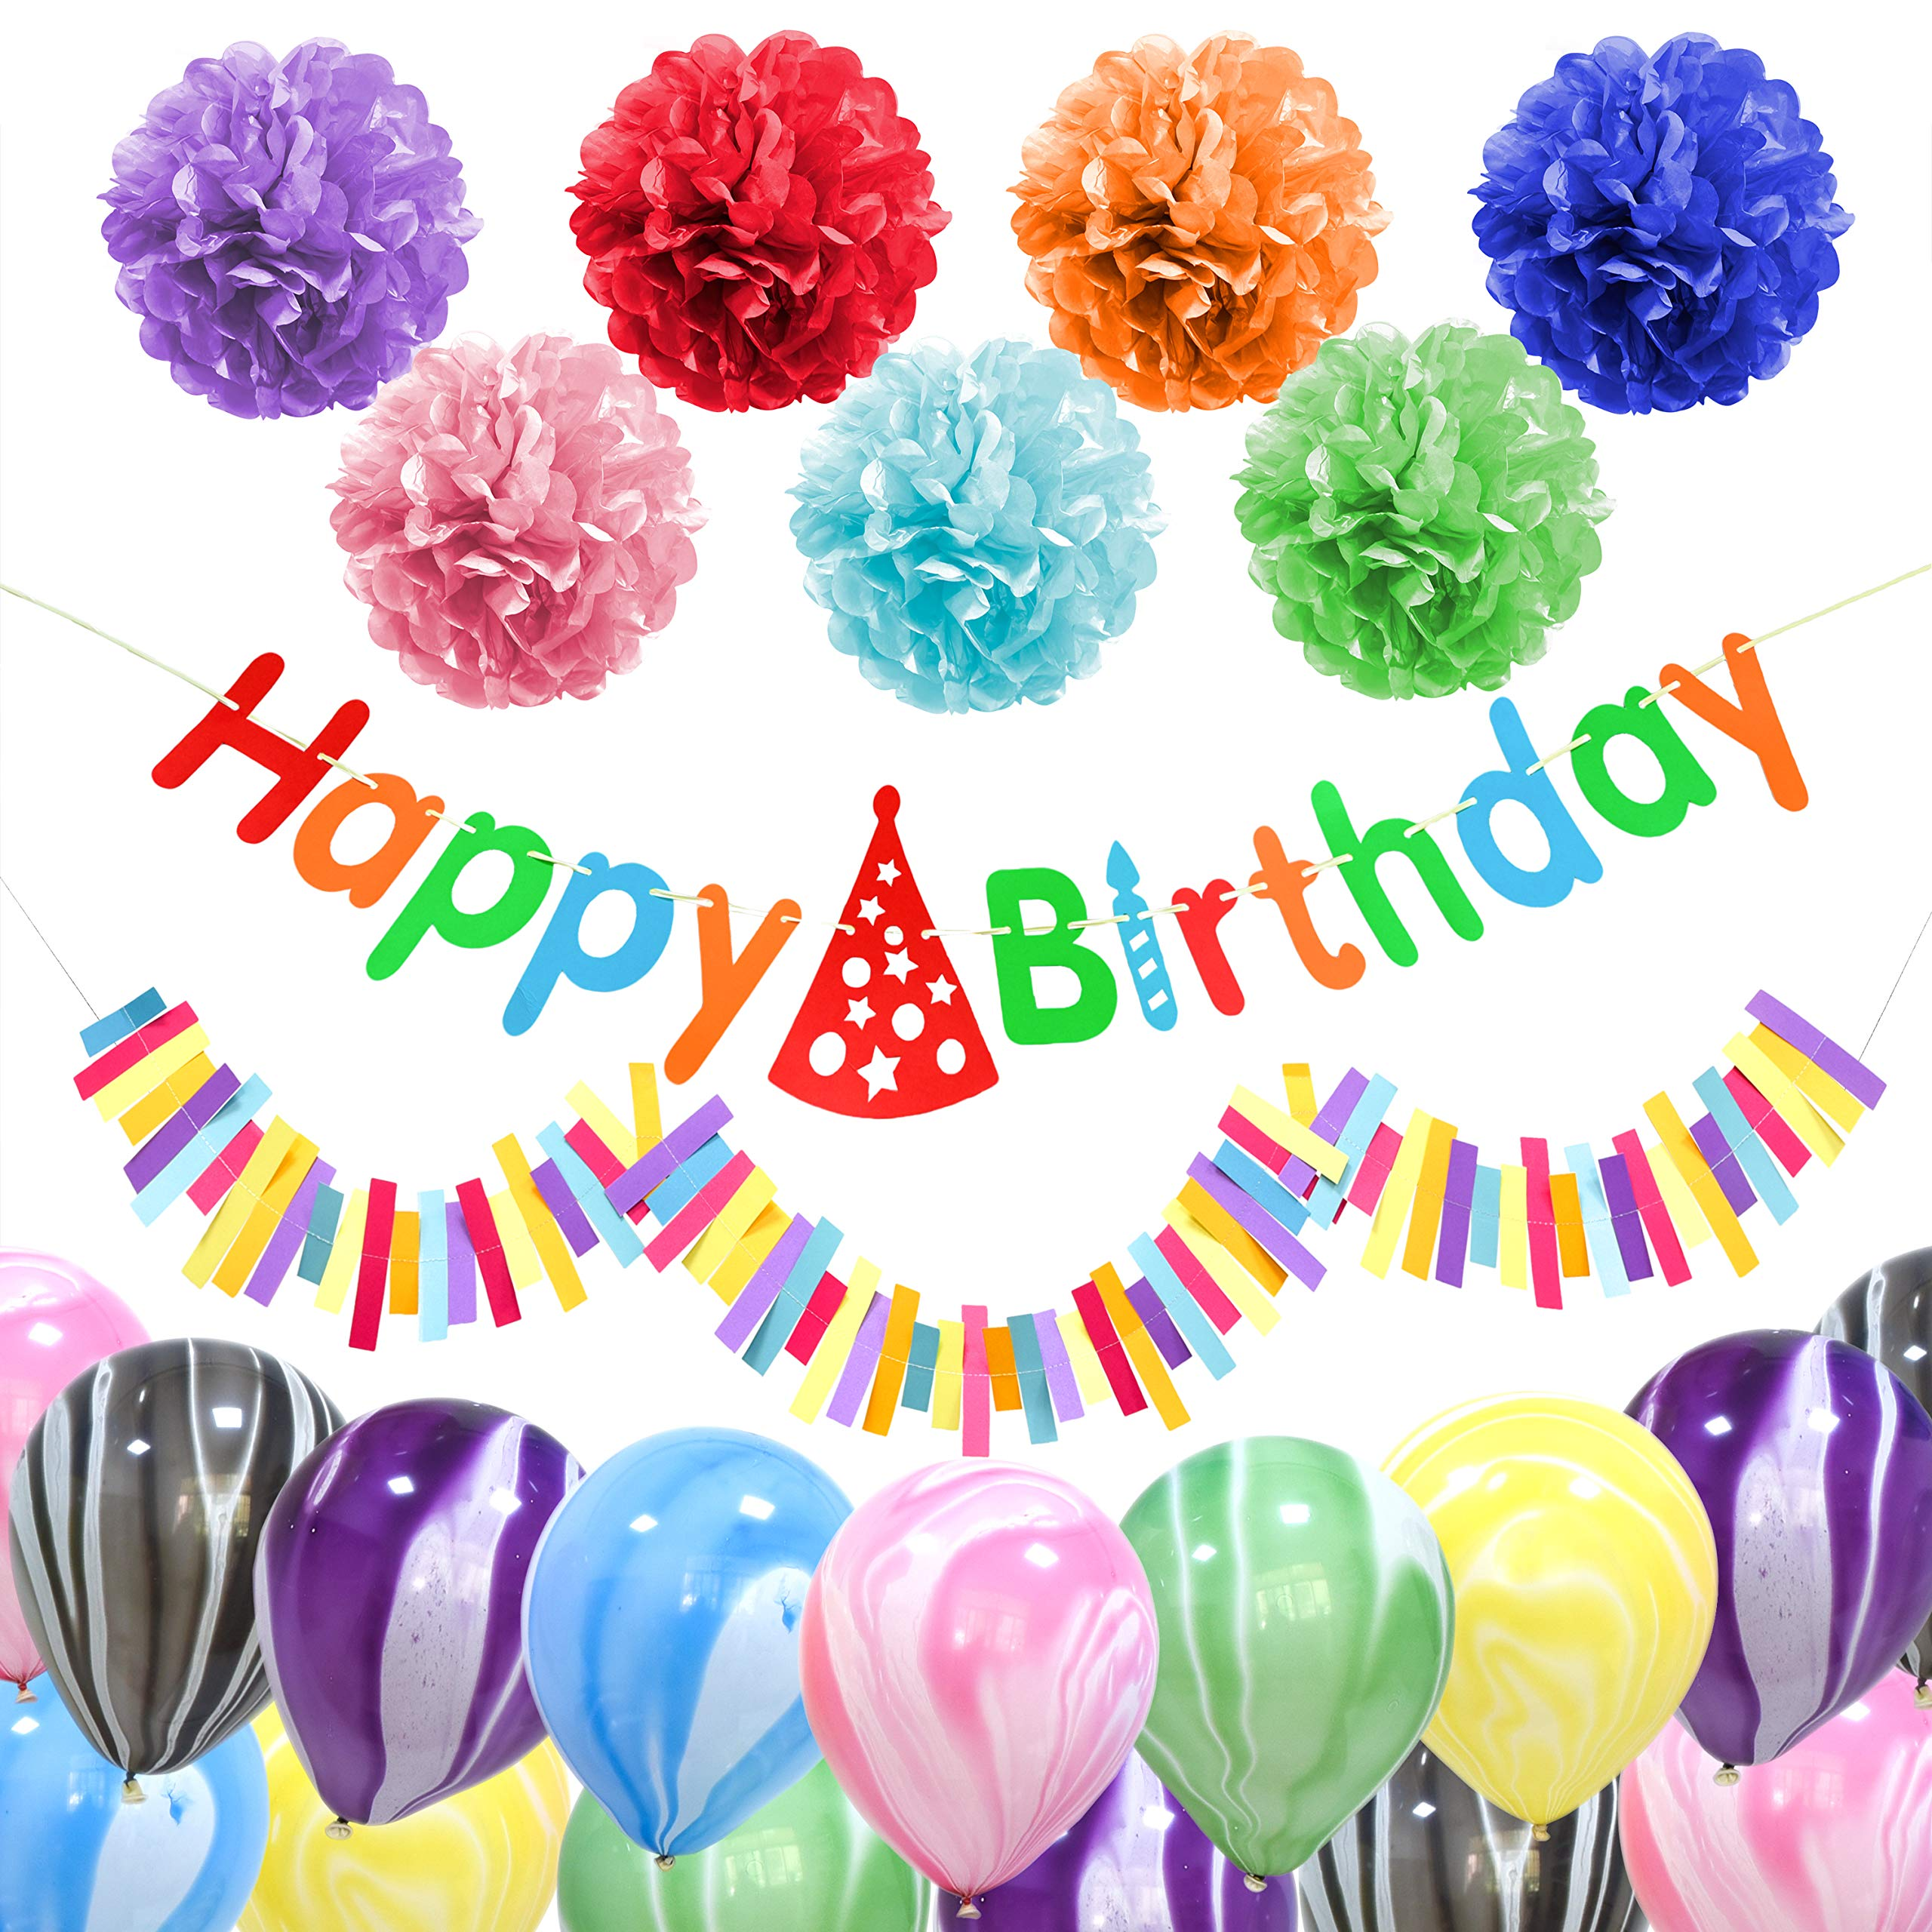 ZukoCert Happy Birthday Banner 7 Pcs Rainbow Colors Paper Pom Poms Birthday Decorations 18 Pcs Marble Agate Balloons Kids Family Celebrate Birthday Party Supplies